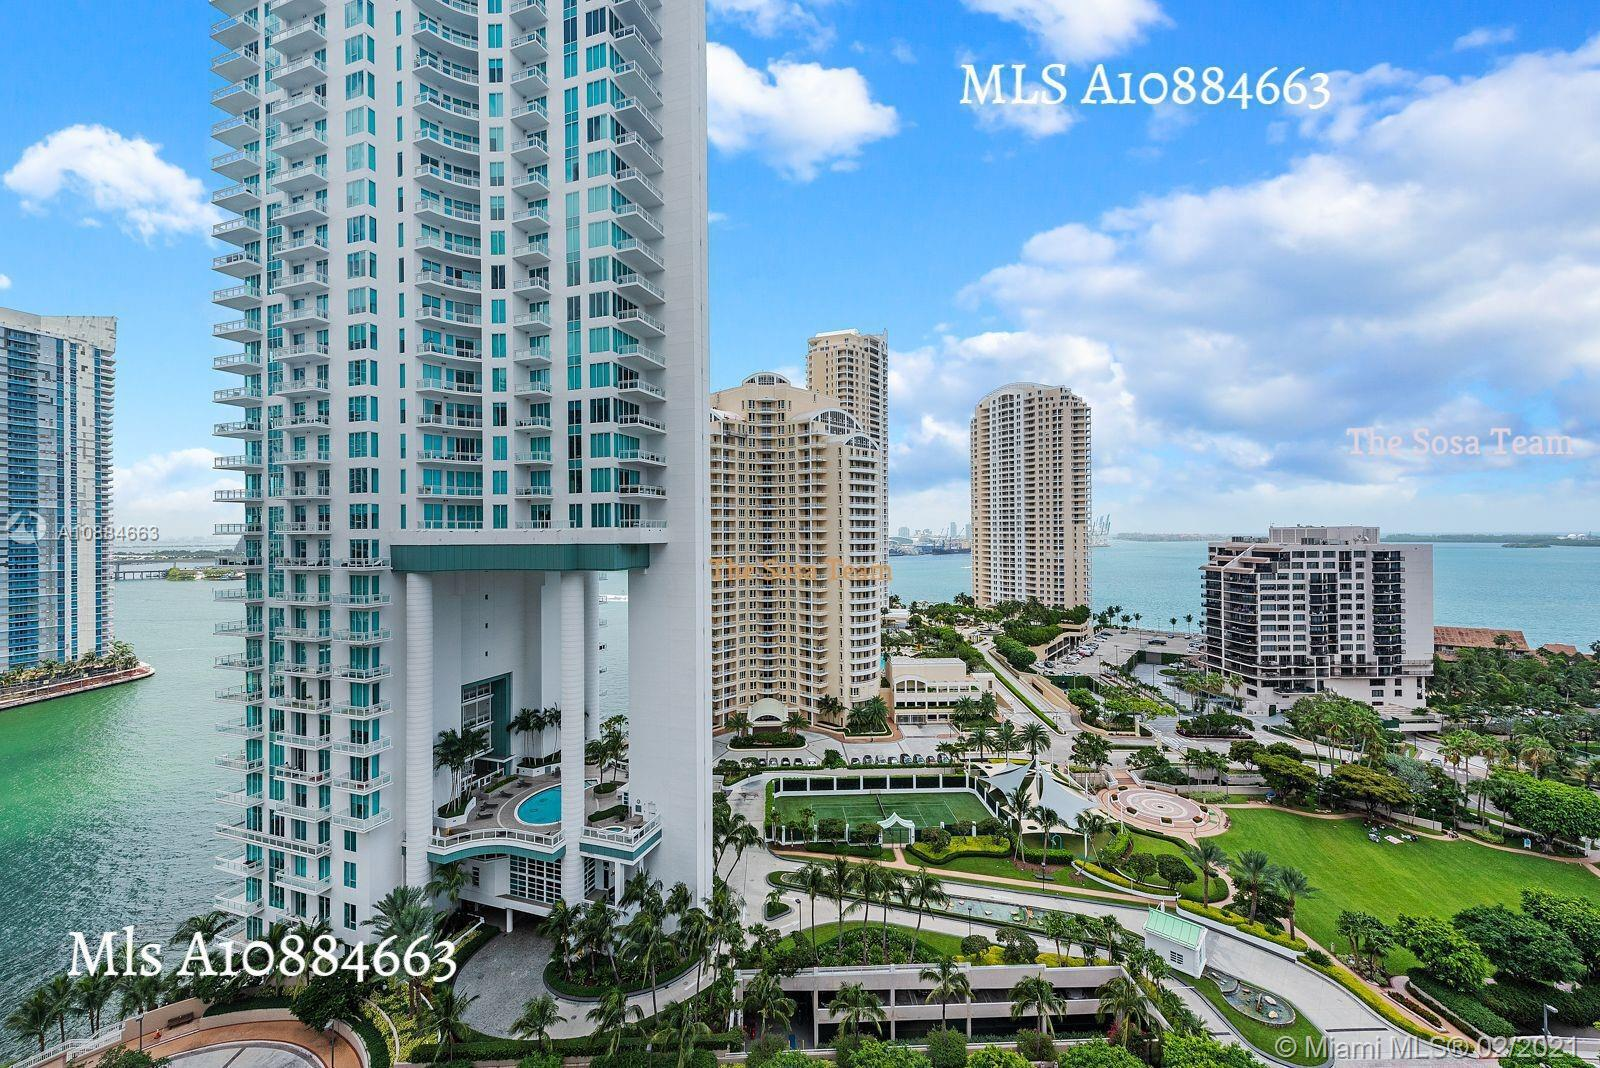 Courts Brickell Key #1912 - 801 Brickell Key Blvd #1912, Miami, FL 33131